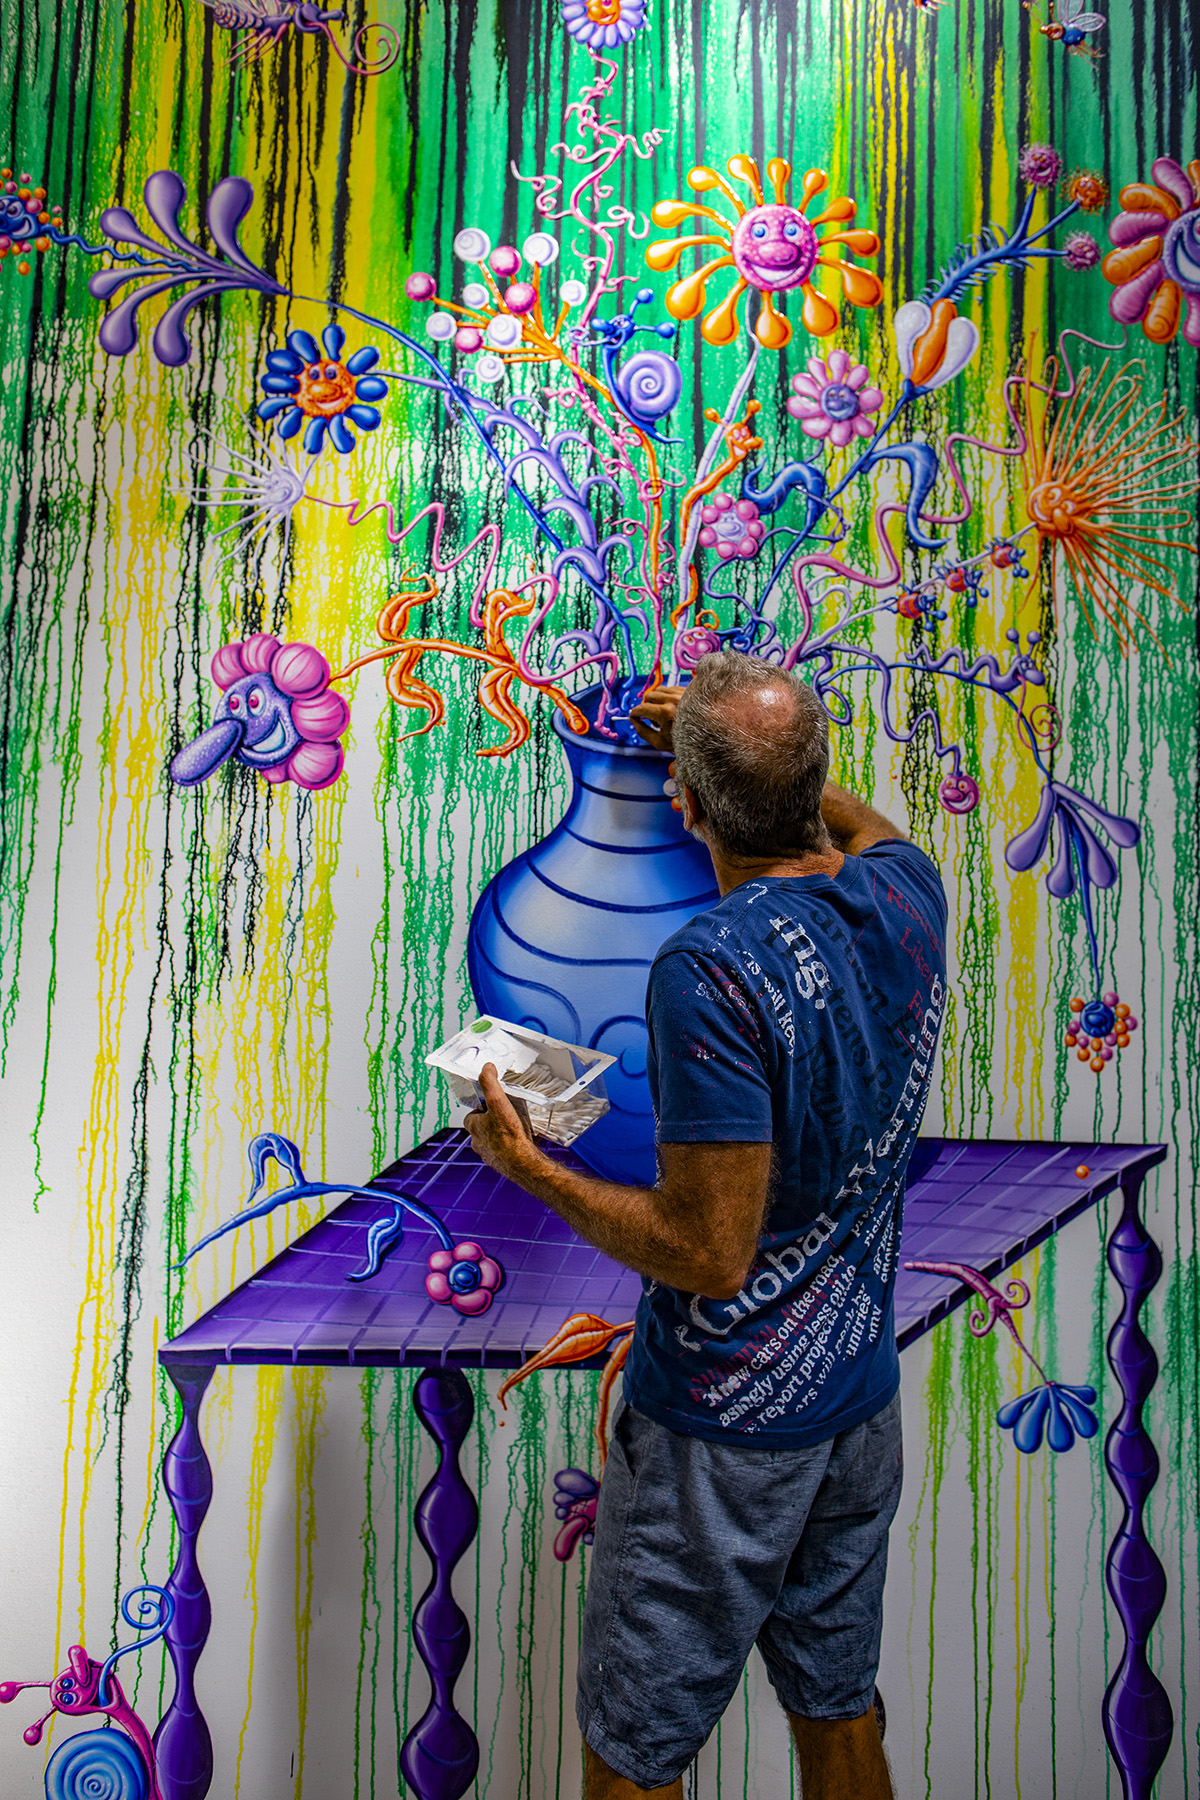 Artist Kenny Scharf painting an abstract composition of flowers